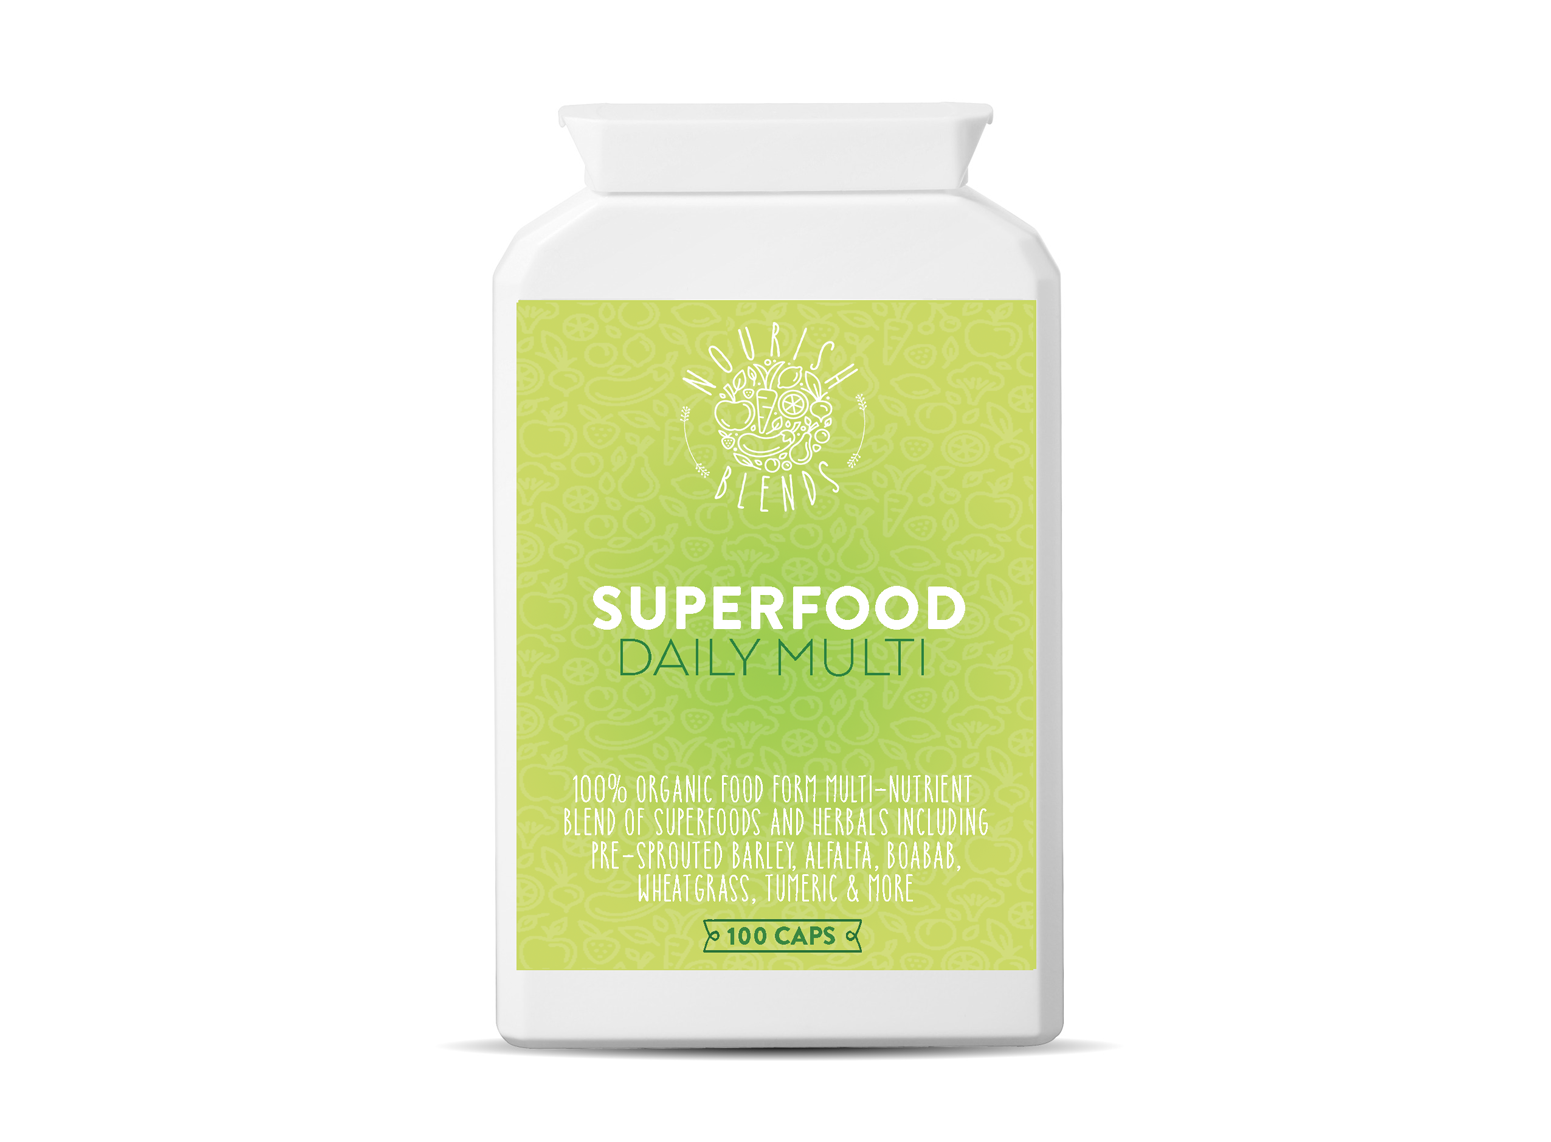 Superfood Daily Multi (100 Caps)